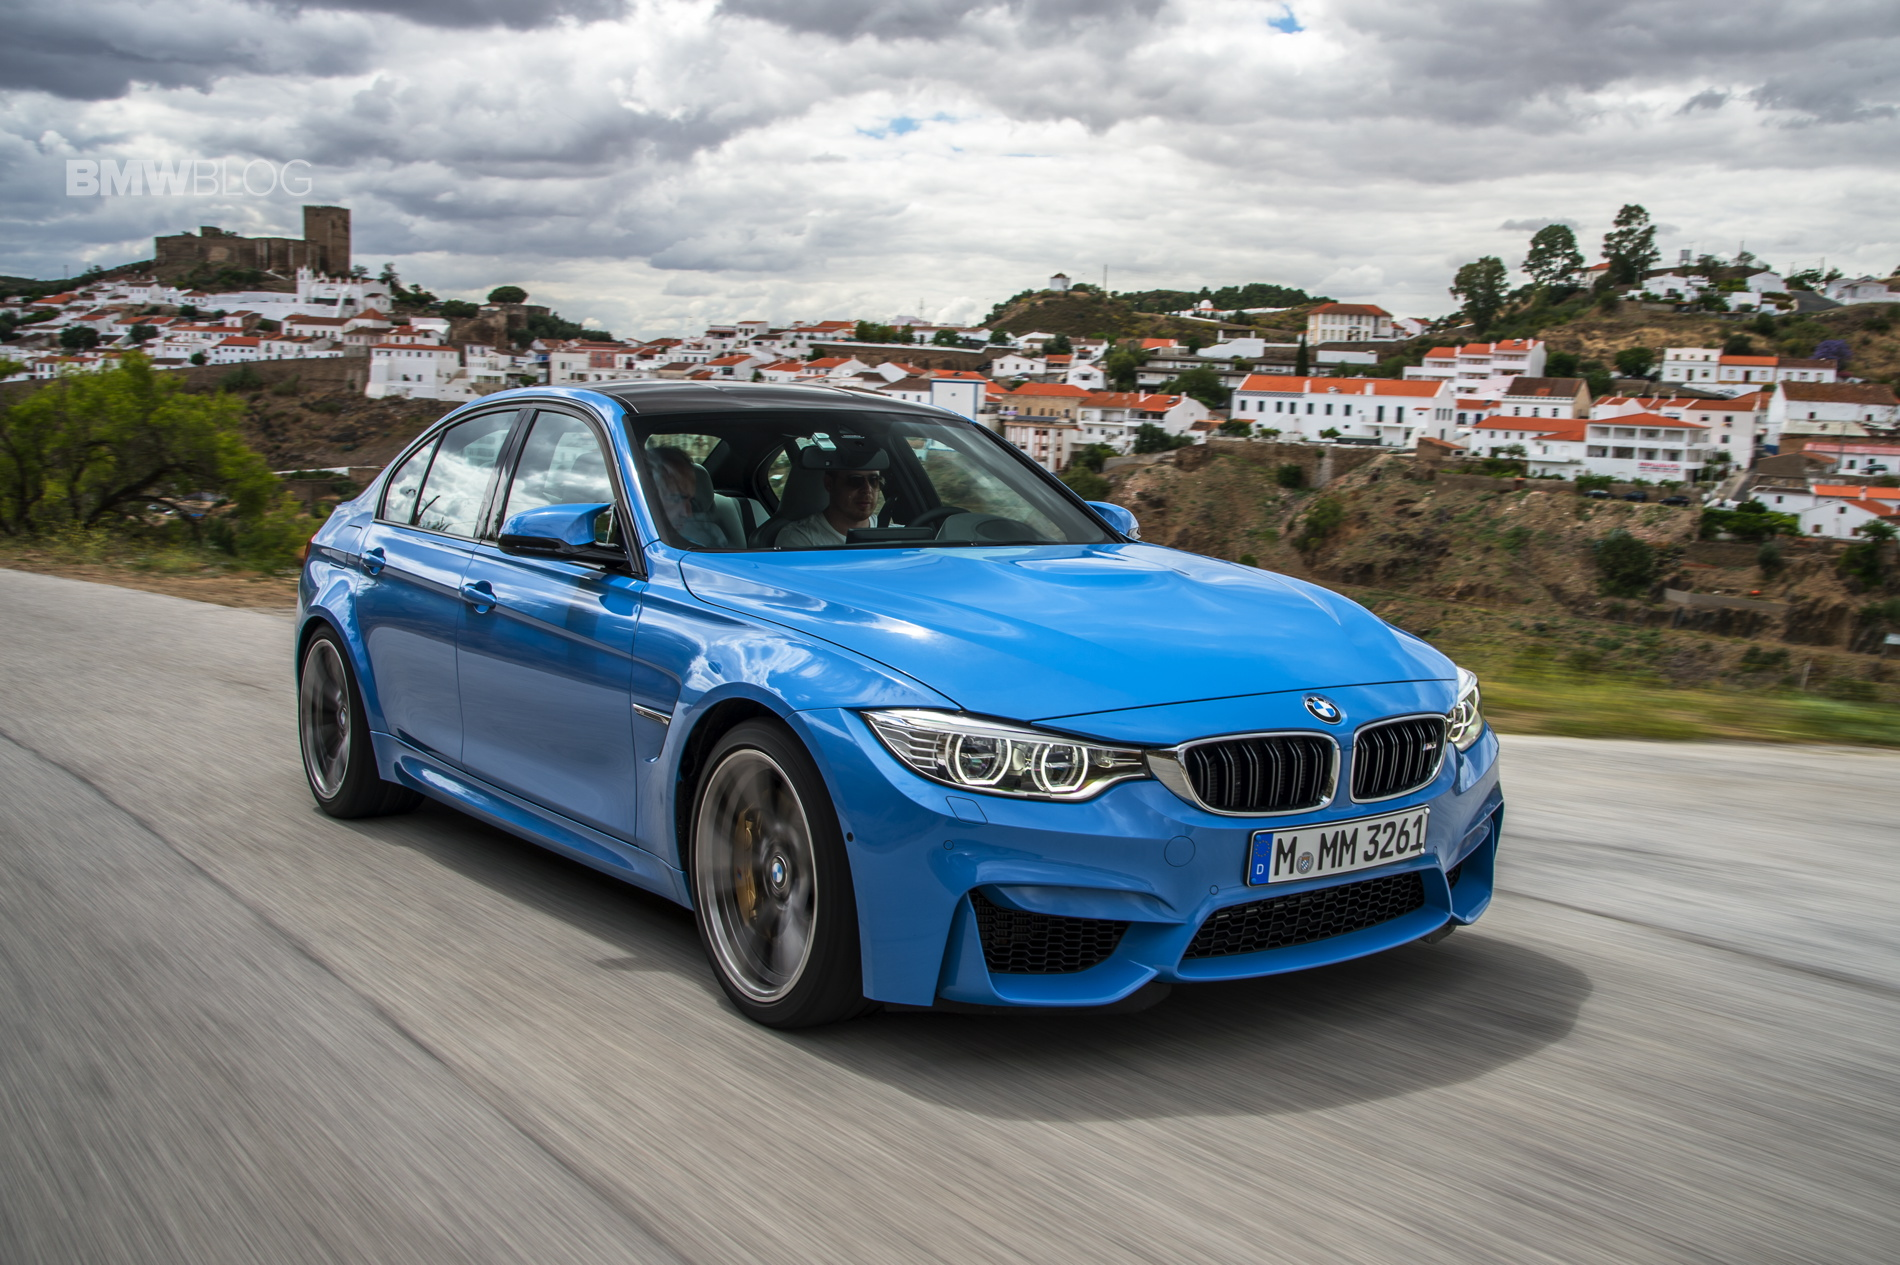 2015 bmw m3 sedan test drive 4photos